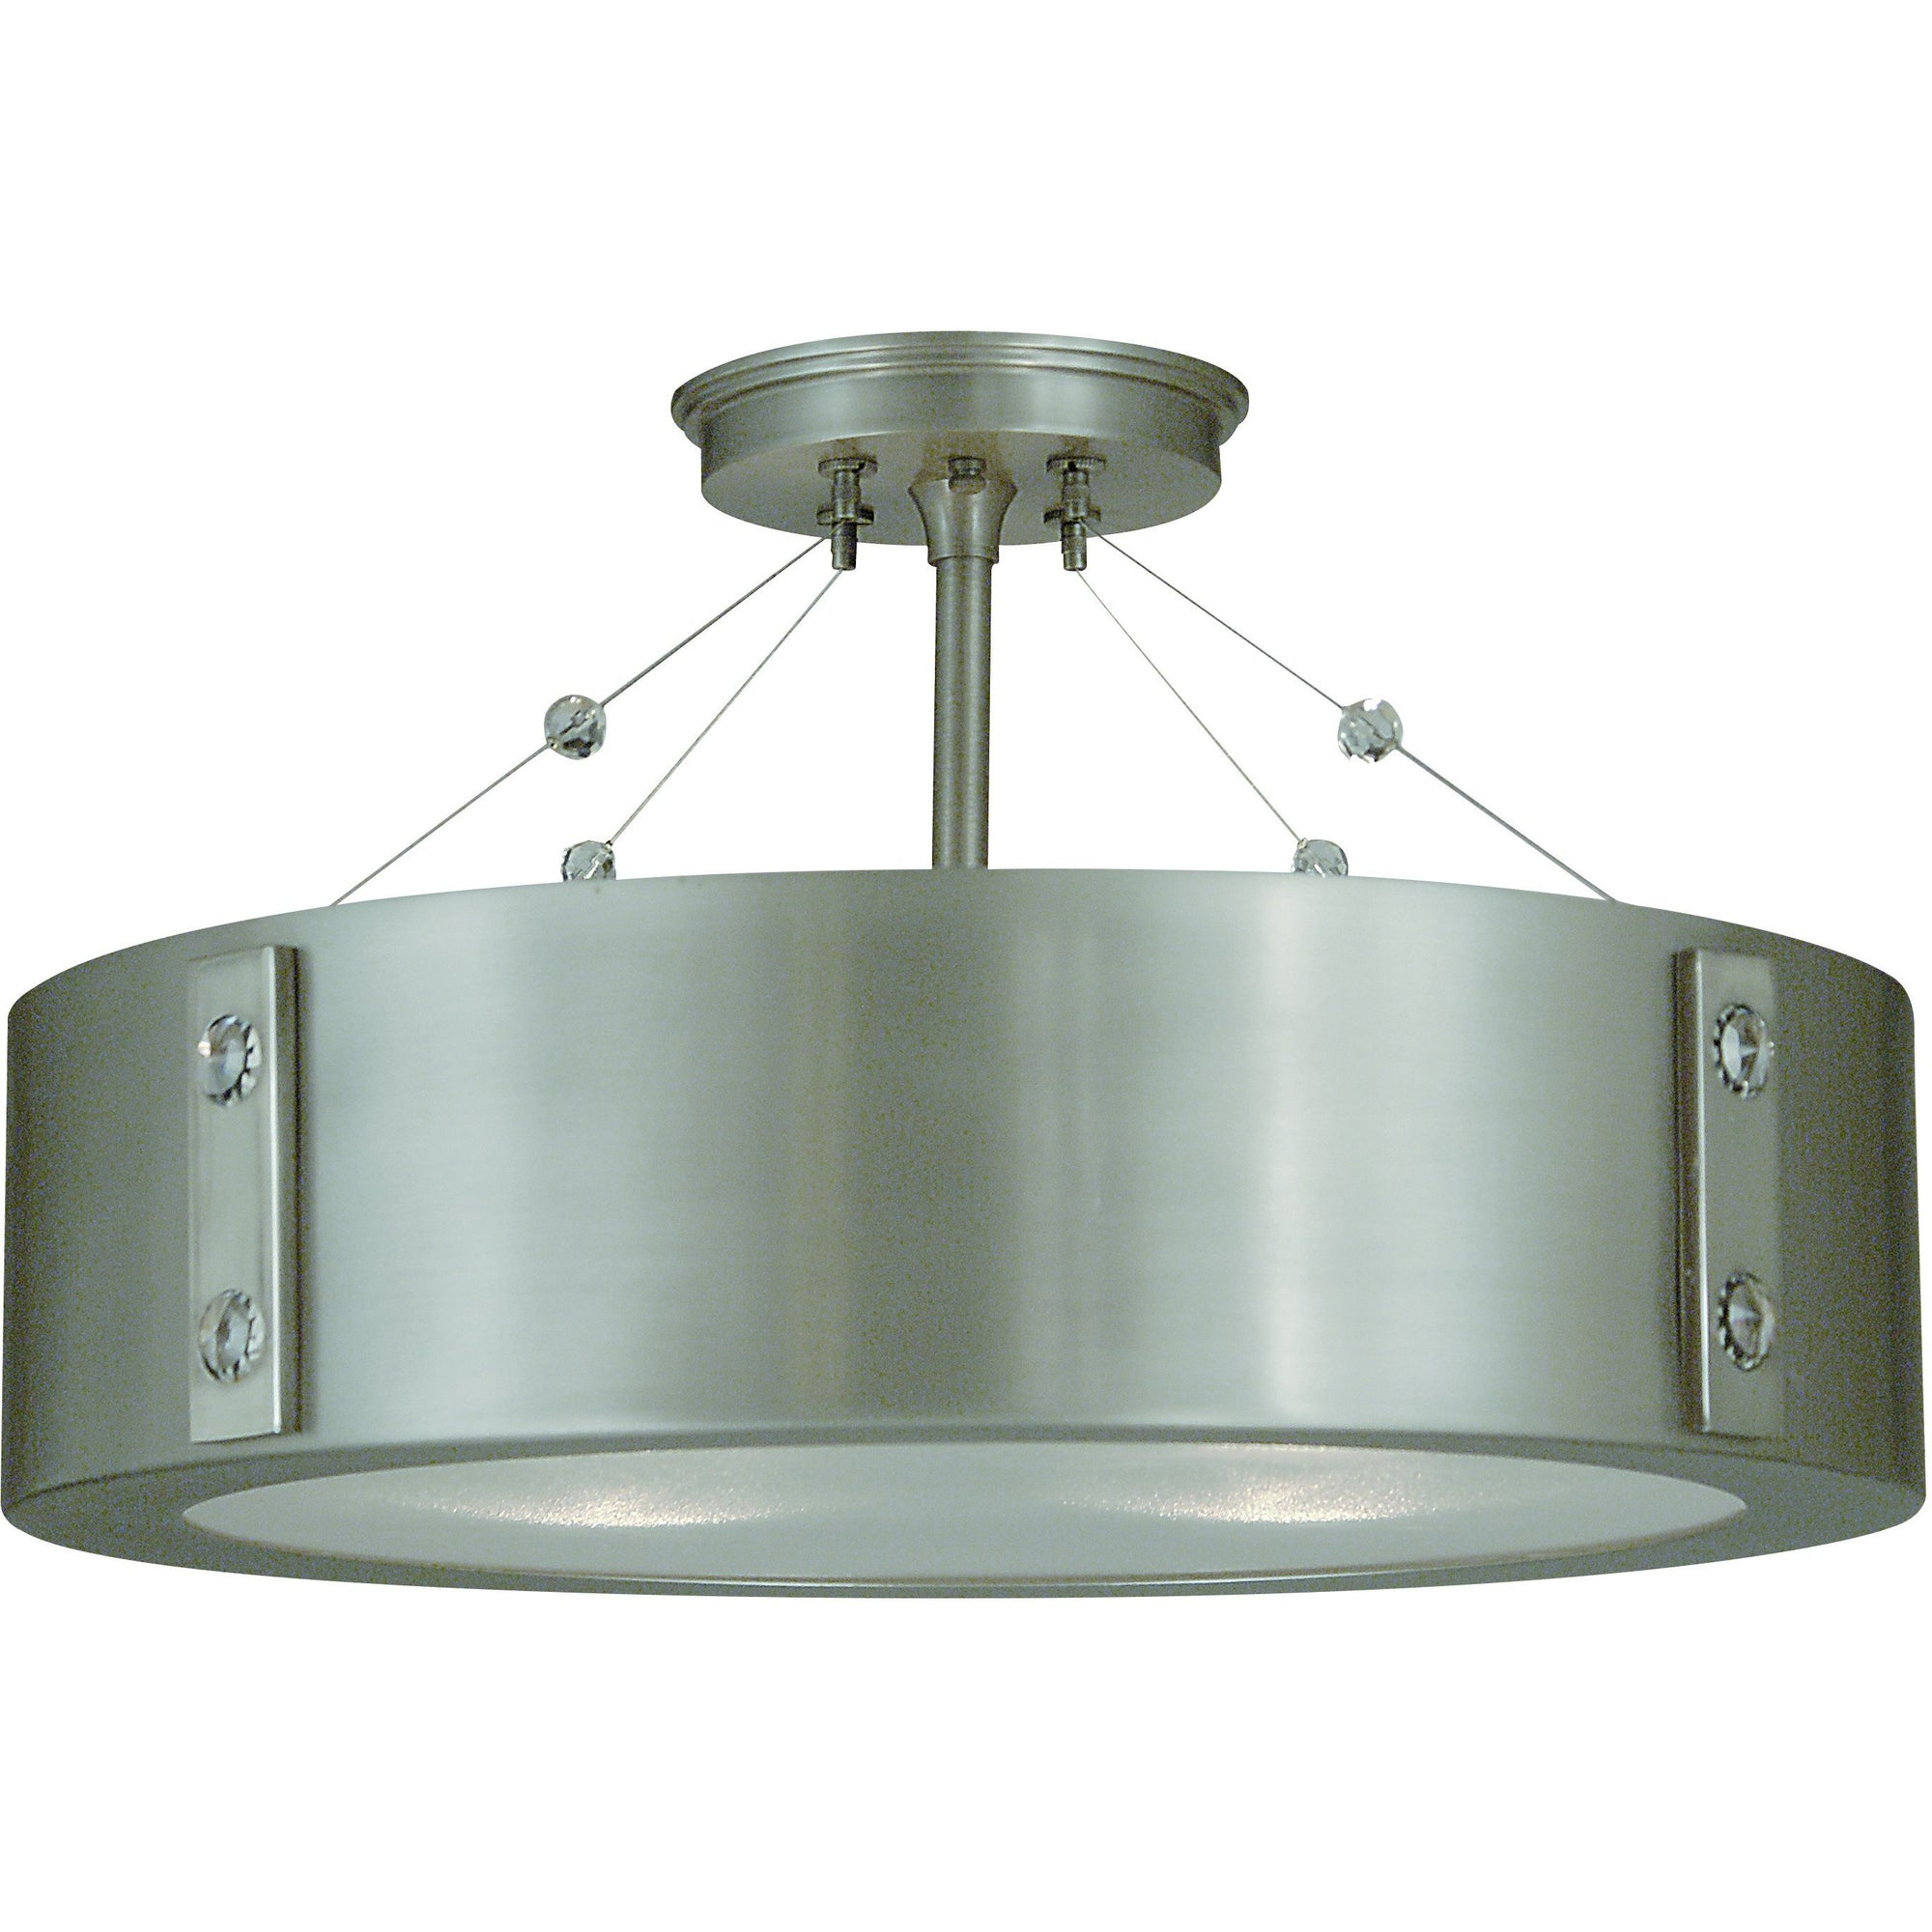 Framburg Flush & Semi Flush Mounts Satin Pewter with Polished Nickel Accents 4-Light Satin Pewter/Polished Nickel Oracle Flush / Semi-Flush Mount by Framburg 5390